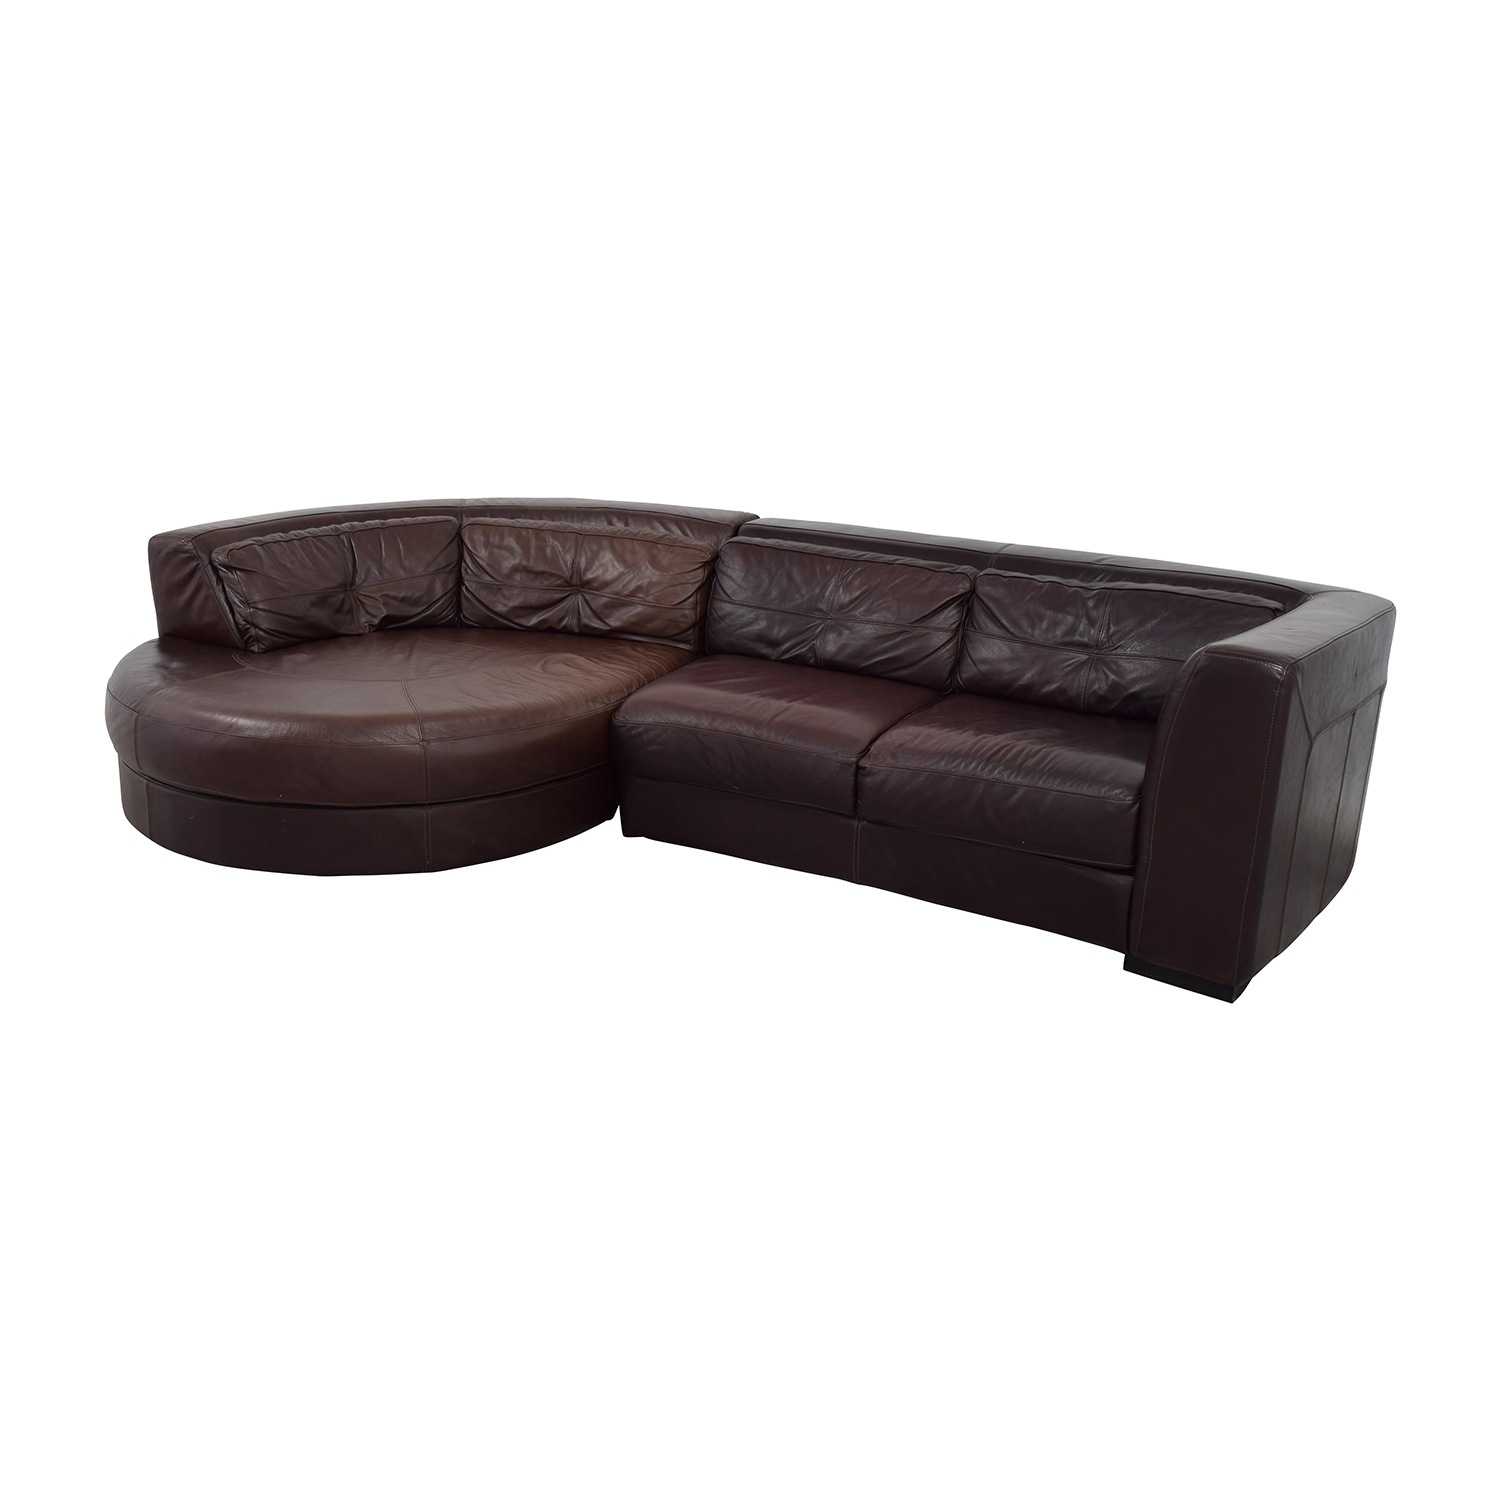 Sensational 70 Off Chateau Dax Chateau Dax Leather Sectional With Curved Chaise Sofas Caraccident5 Cool Chair Designs And Ideas Caraccident5Info